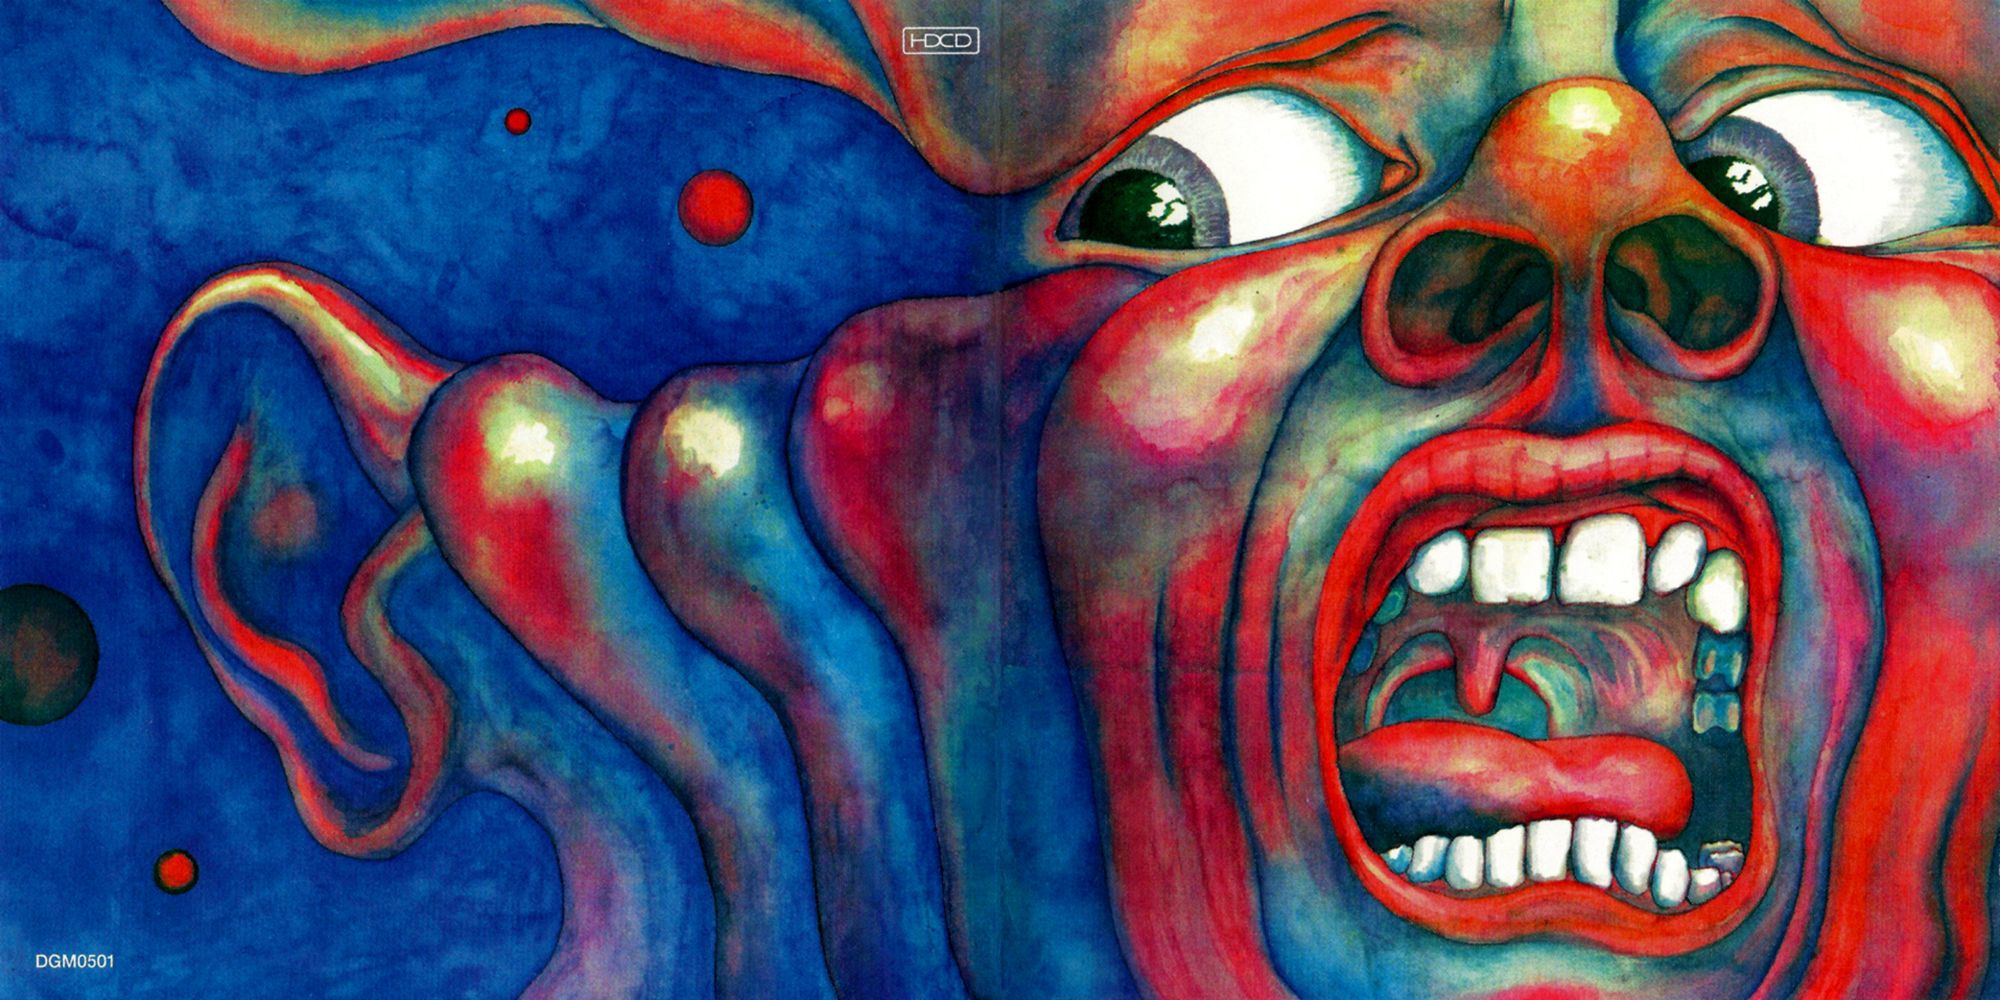 King Crimson album covers HD Wallpaper